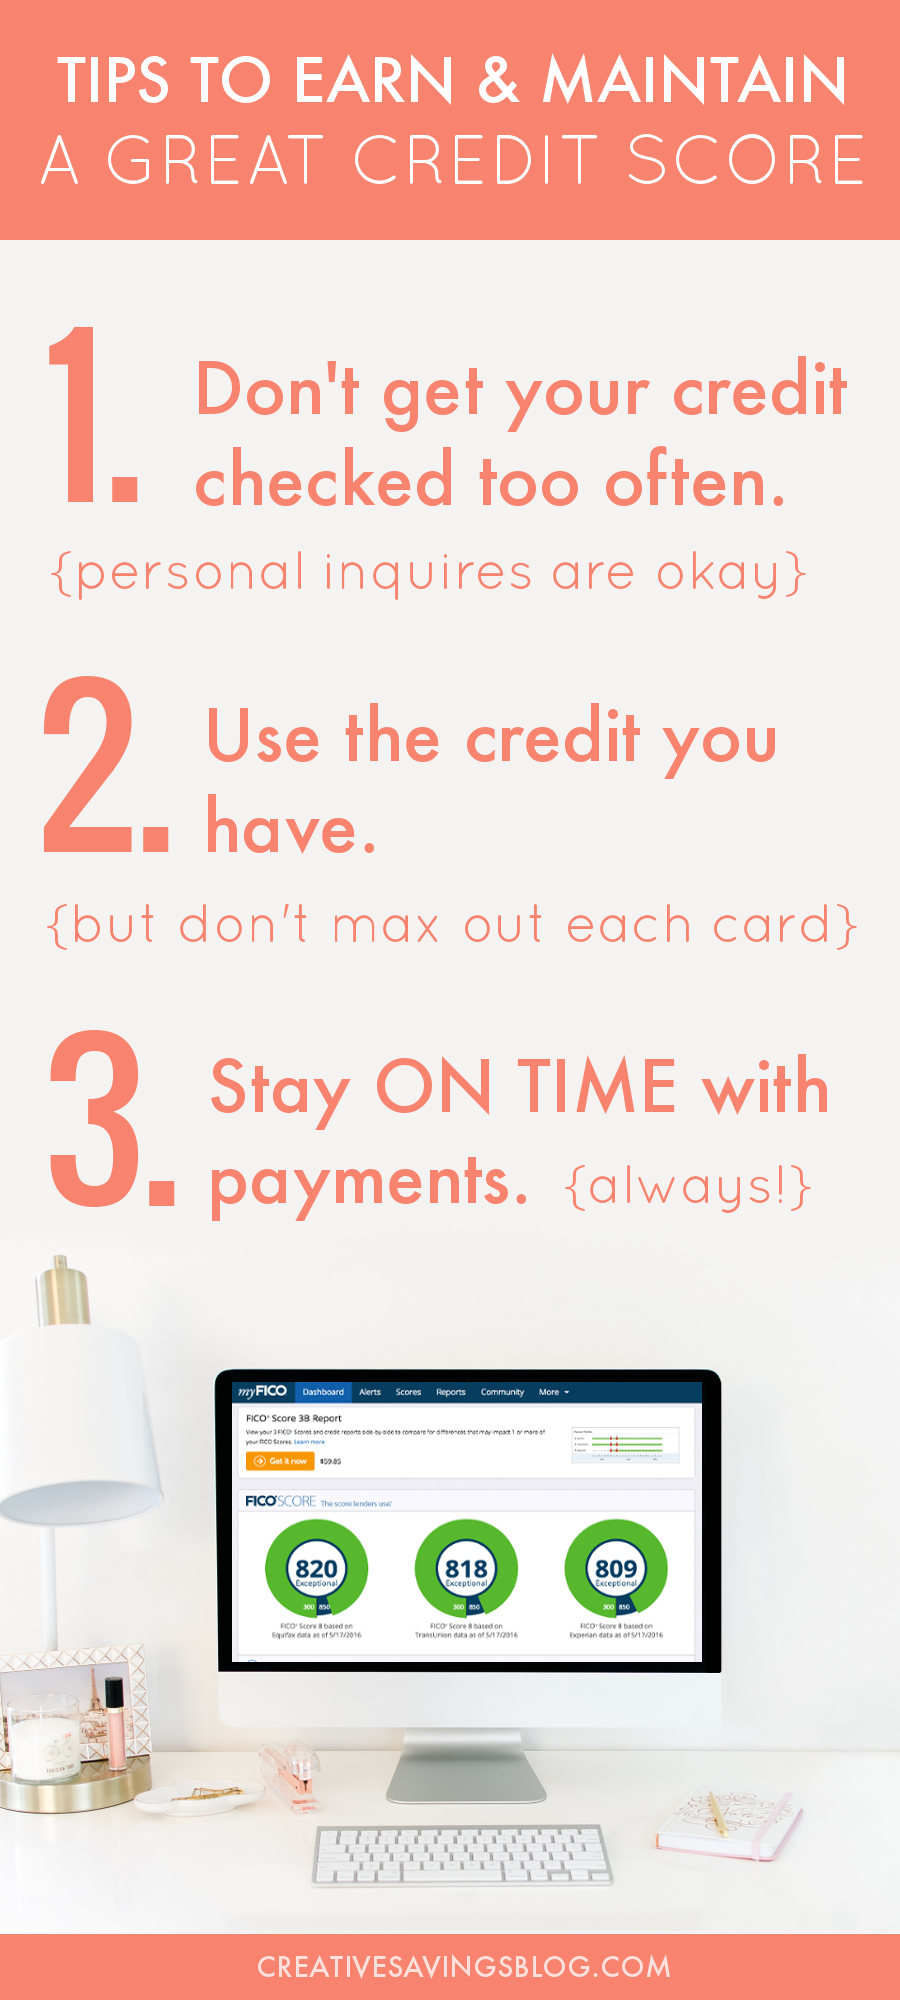 Confused about credit scores? These tried-and-true tips help you earn and maintain a great credit score for years to come!